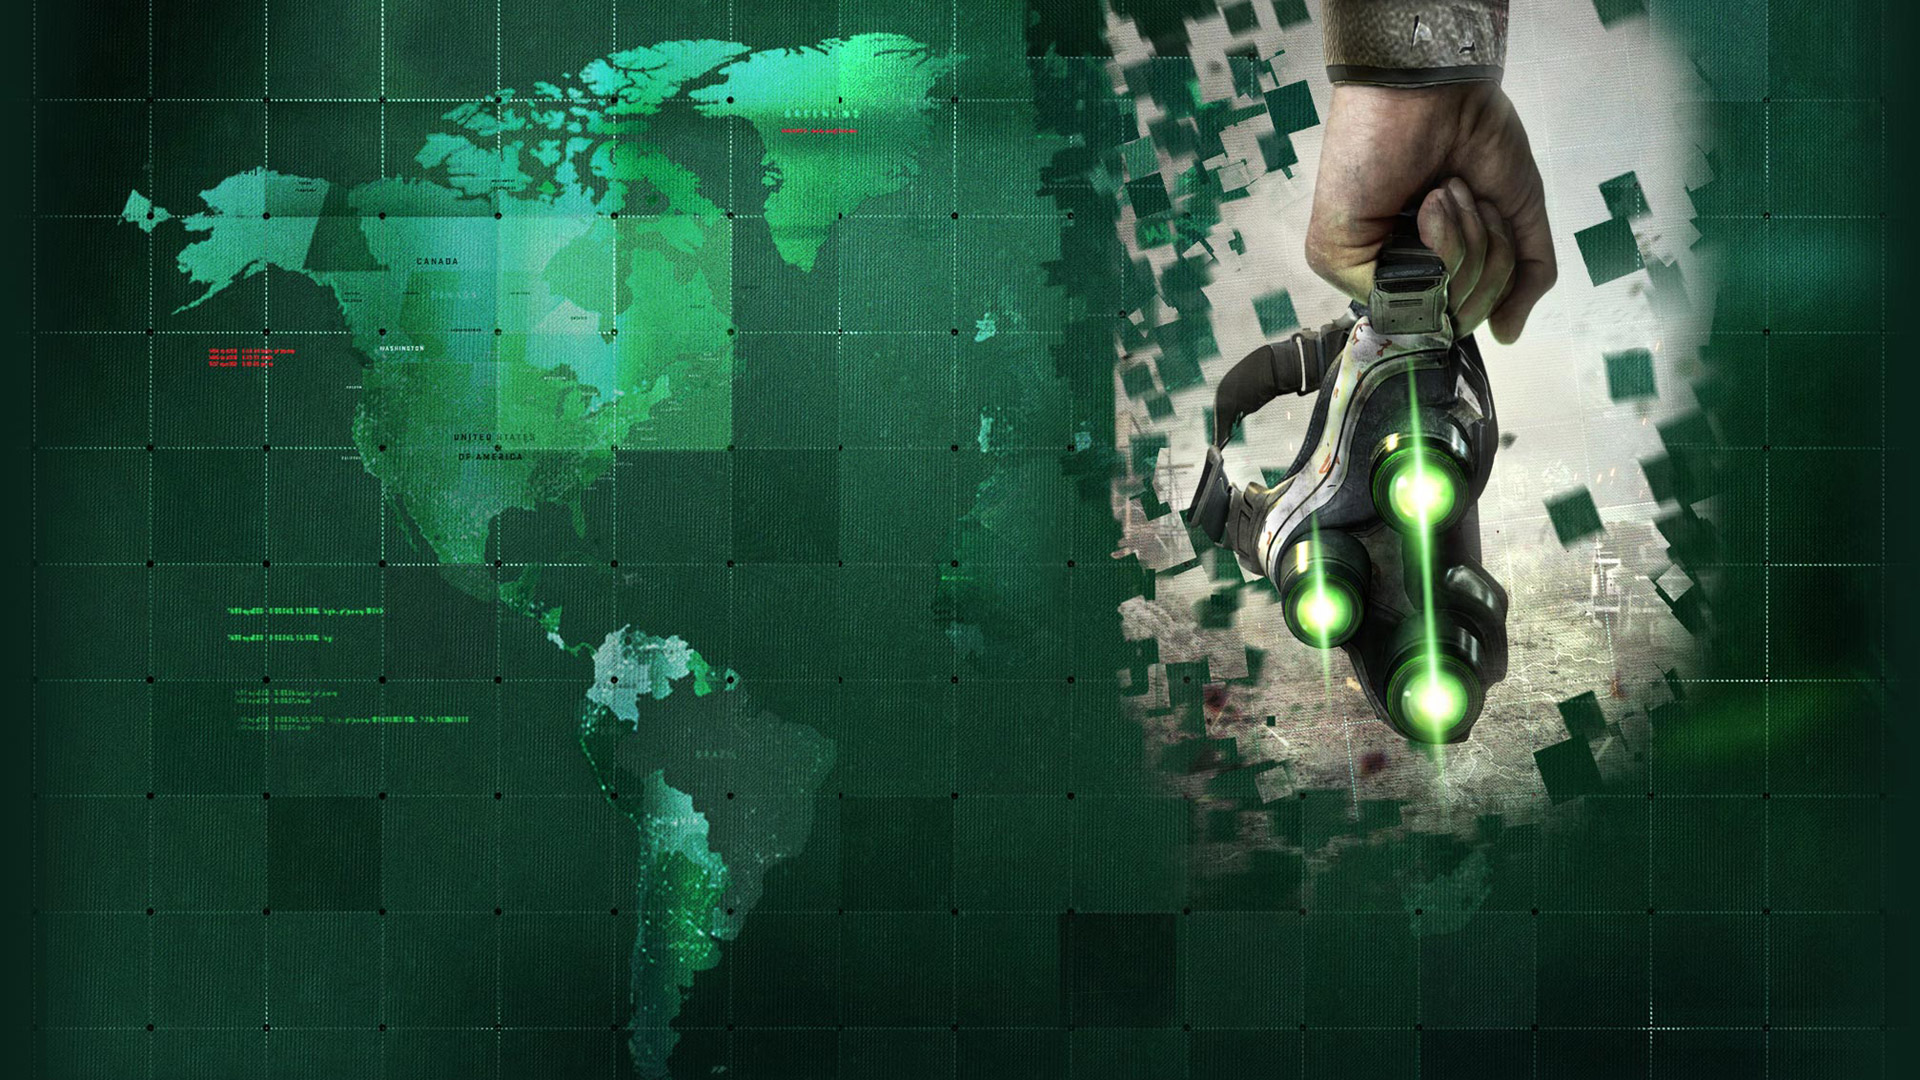 Actor confirma que haverá um novo Splinter Cell